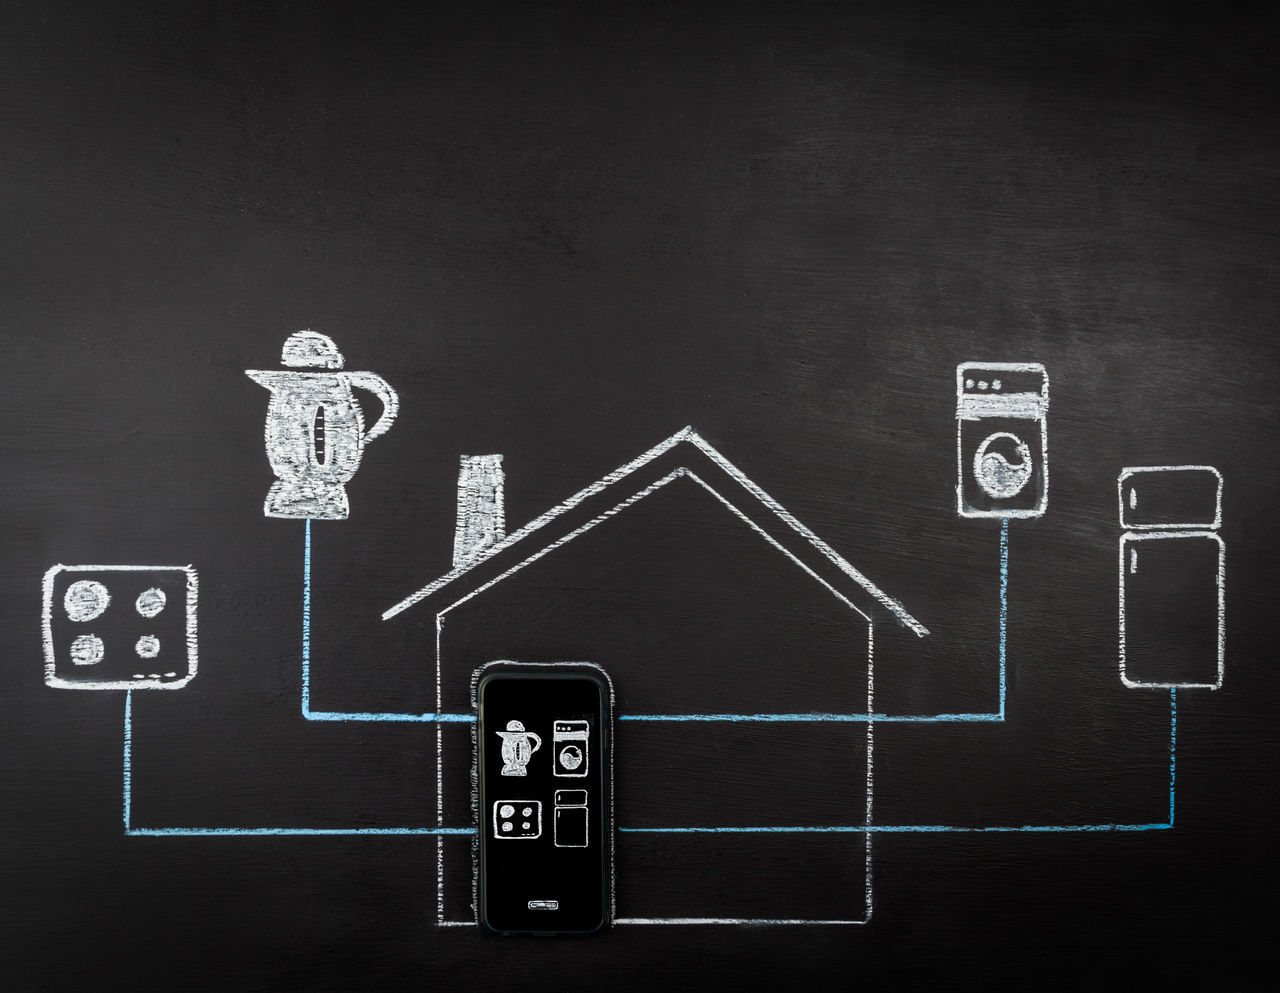 Smart house concept hand drawing on chalk board. Mobile phone controlling home appliances. Horizontal image with copy space. Appliances Blackboard  Communication Concept Human Representation No People Smart Home Smart On Technology Technology Everywhere